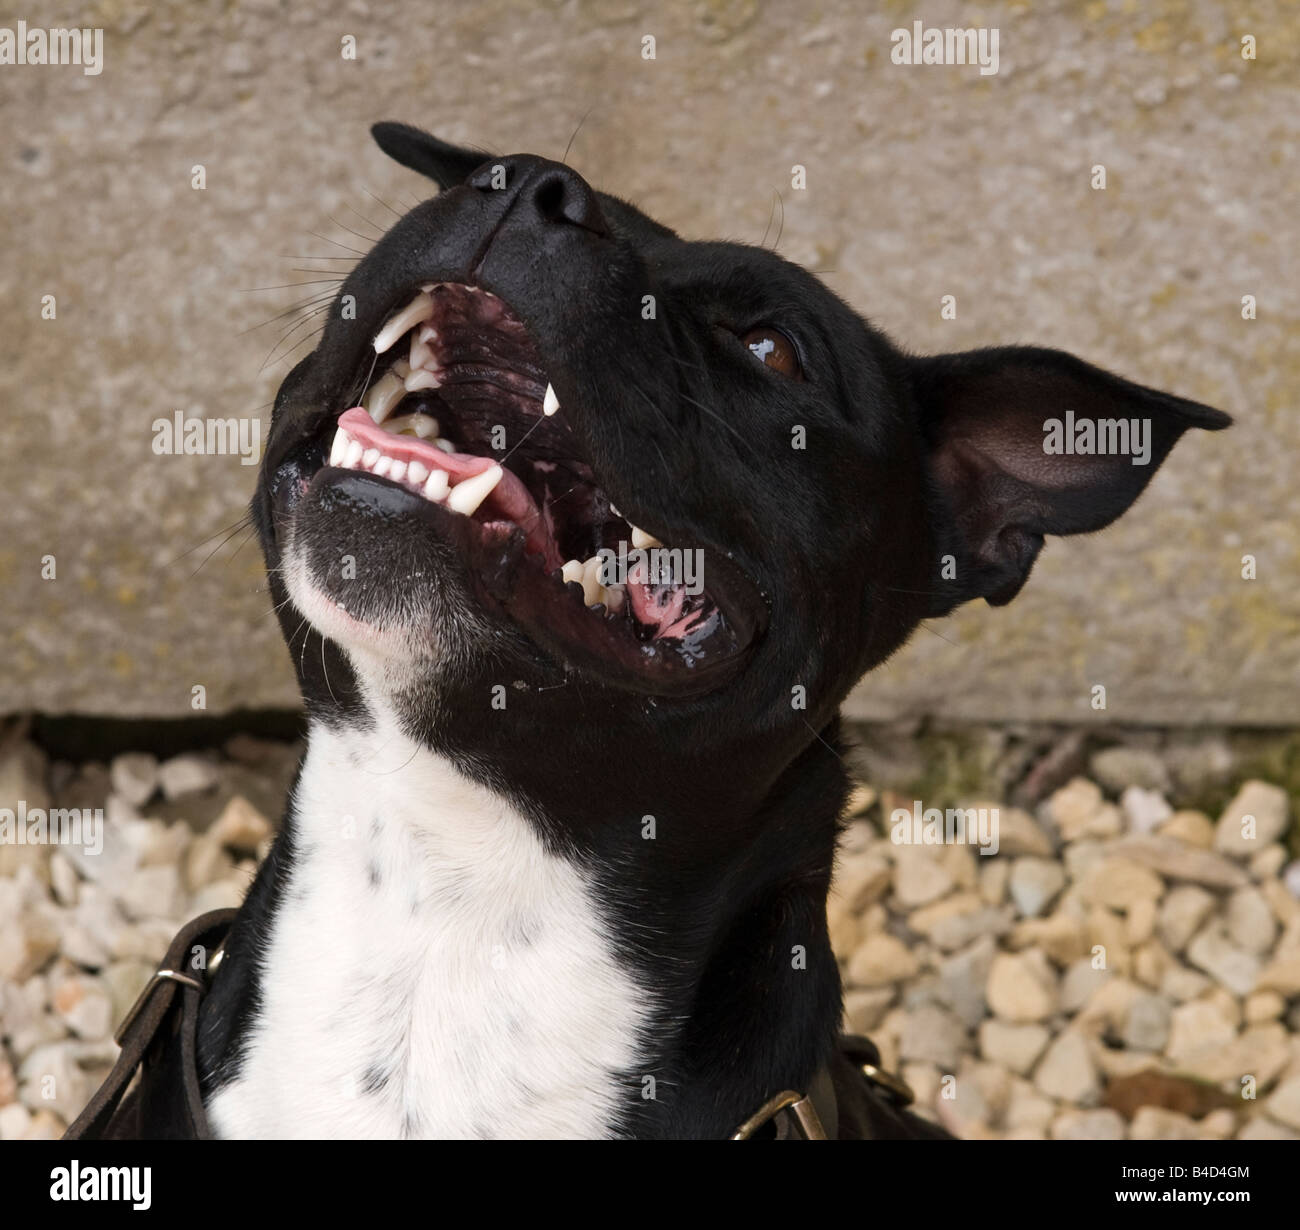 Staffordshire, Bull, Terrier, dog, staff, pitbull 2 - Stock Image